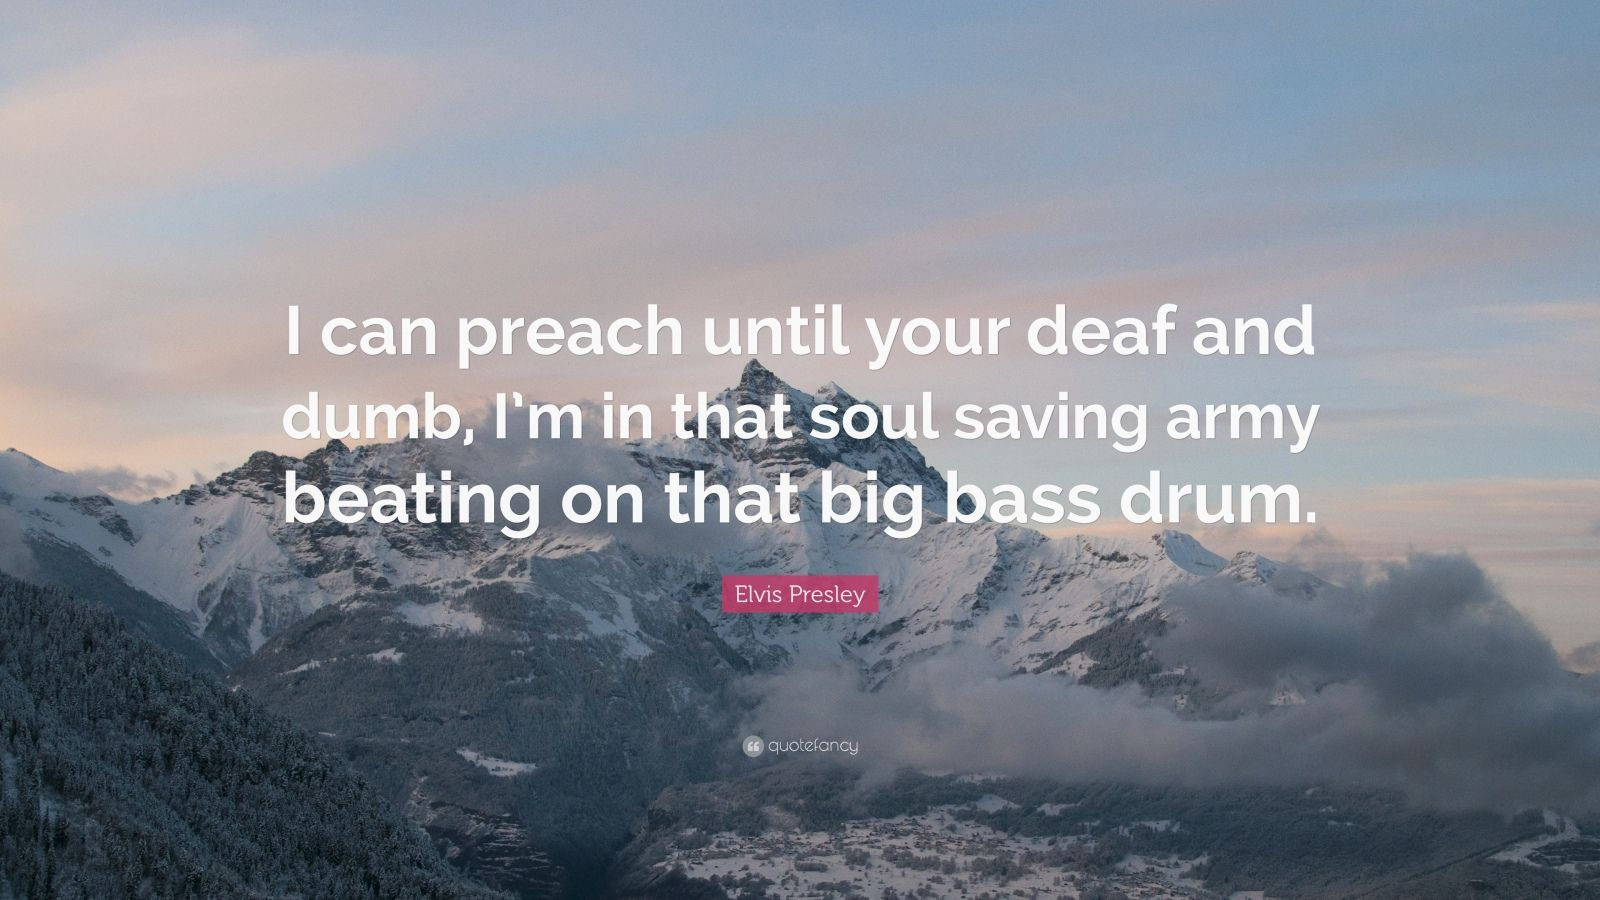 """Elvis Presley Quote: """"I can preach until your deaf and dumb, I'm in that soul saving army beating on that big bass drum."""""""